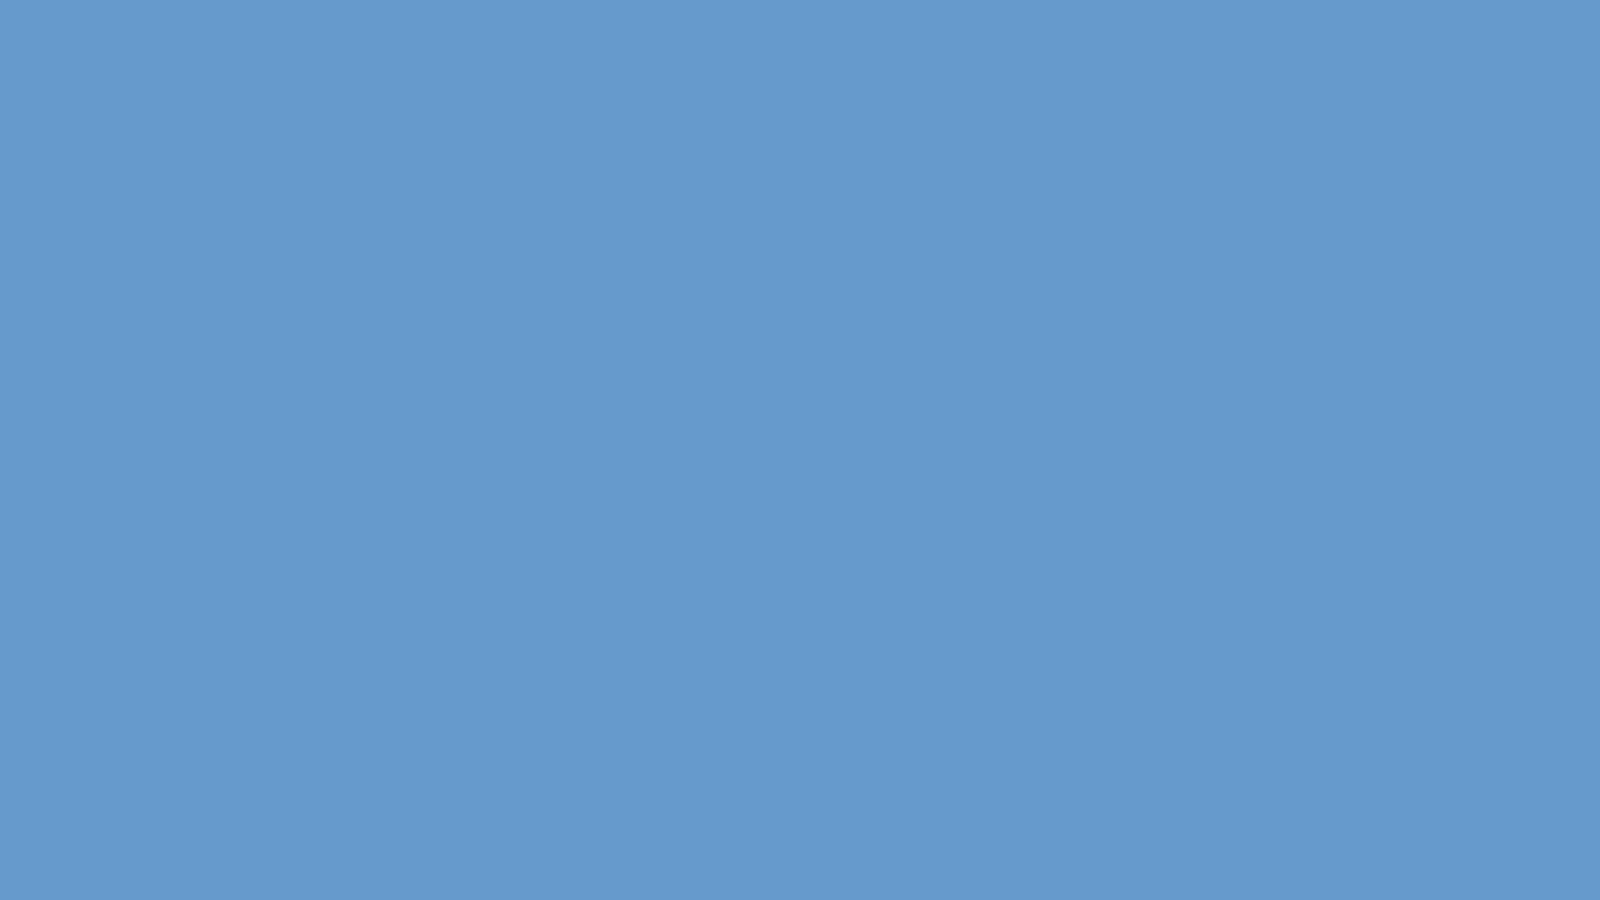 1600x900 Blue-gray Solid Color Background